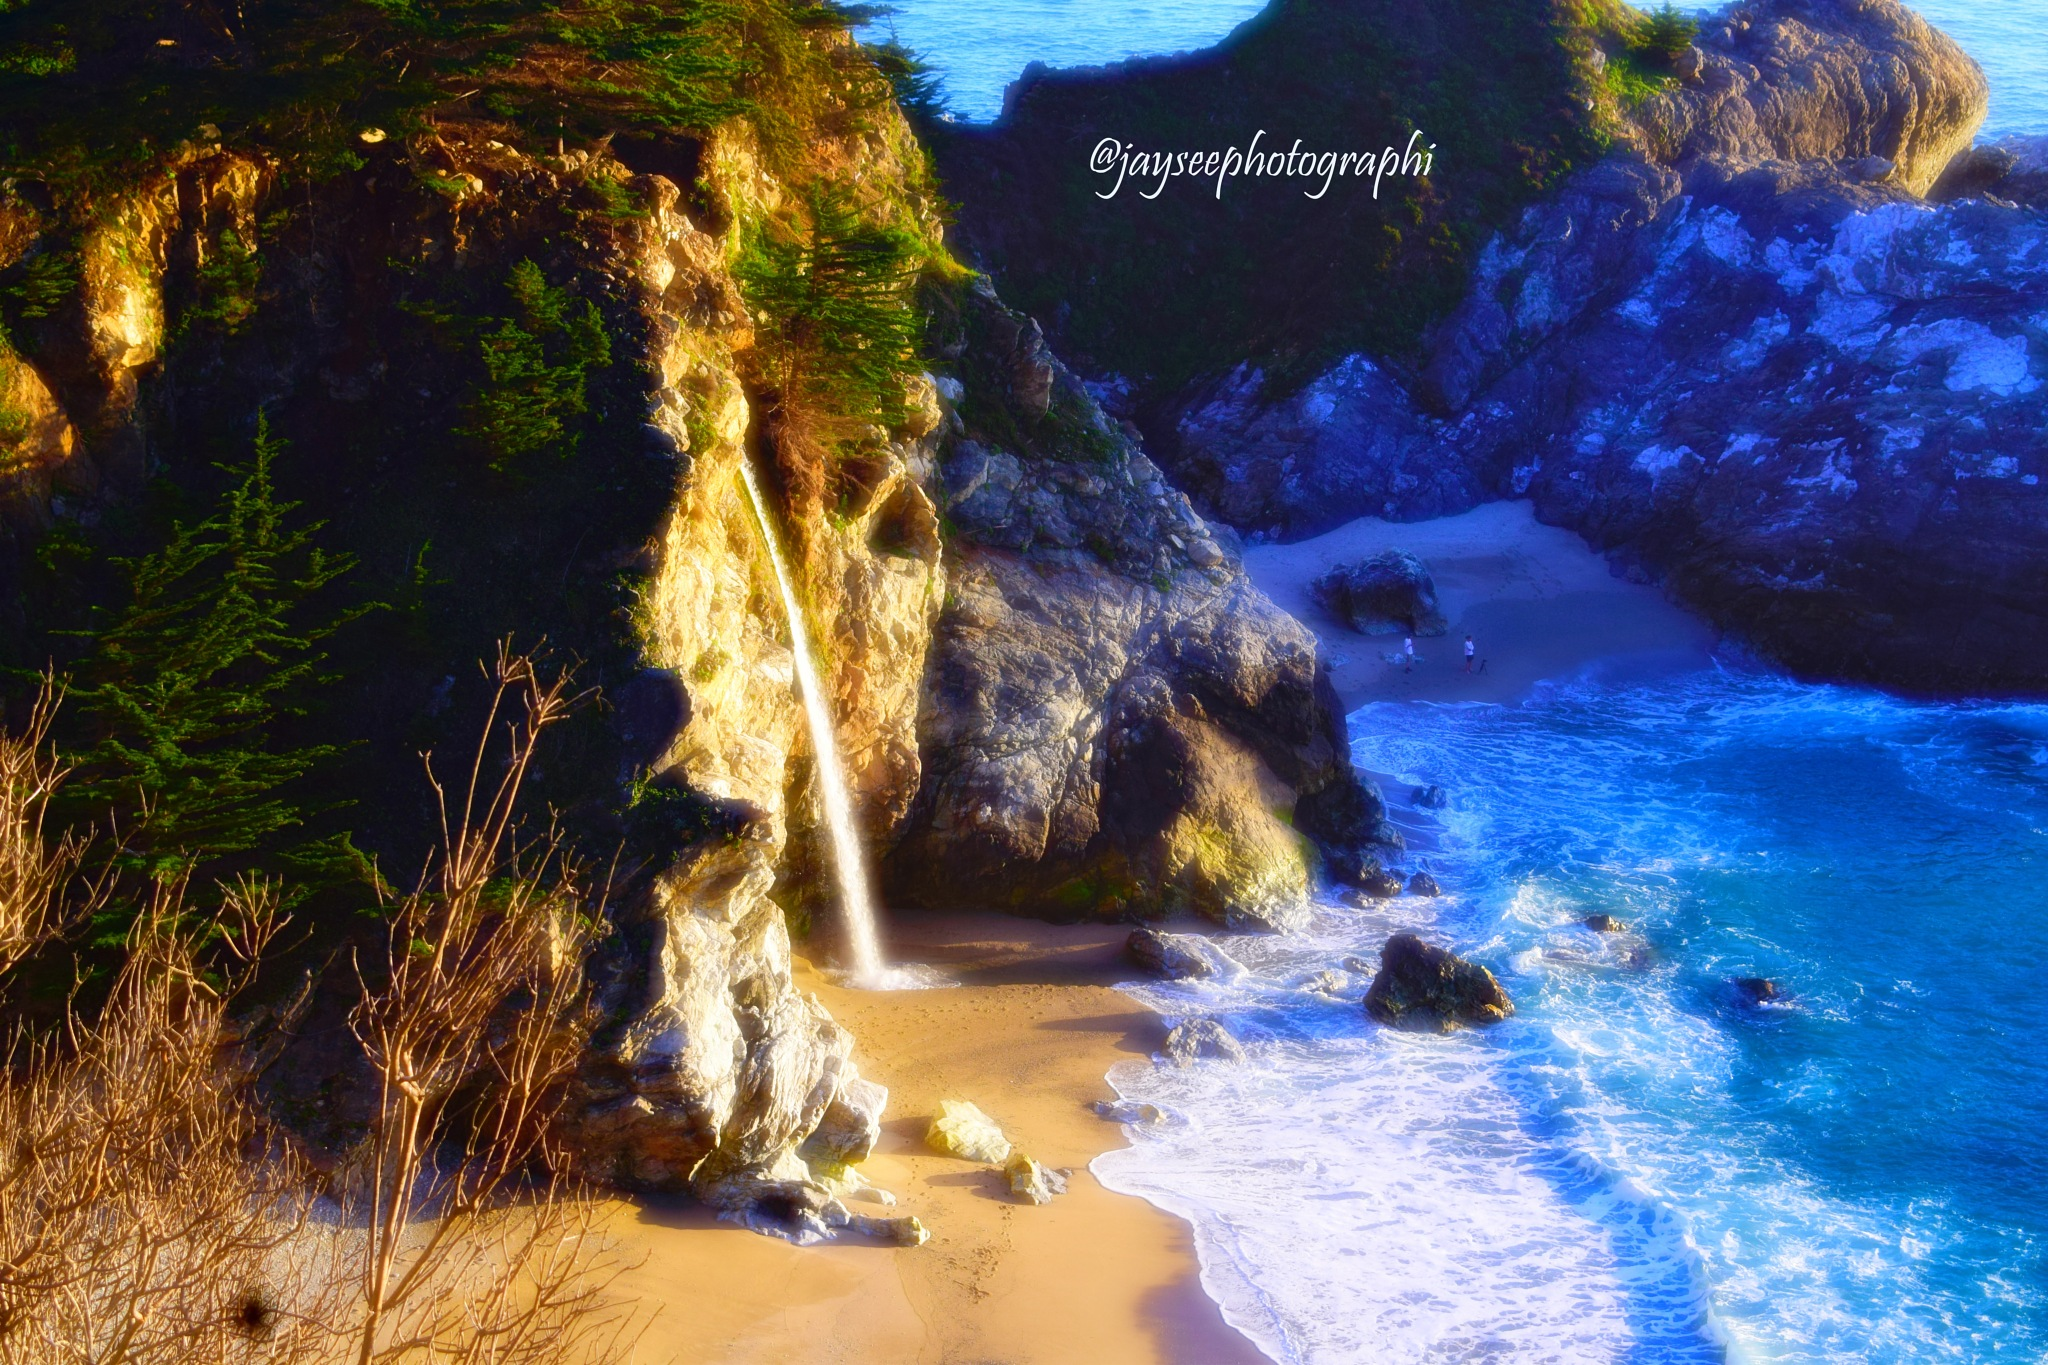 McWay Falls by Jay See Photographi